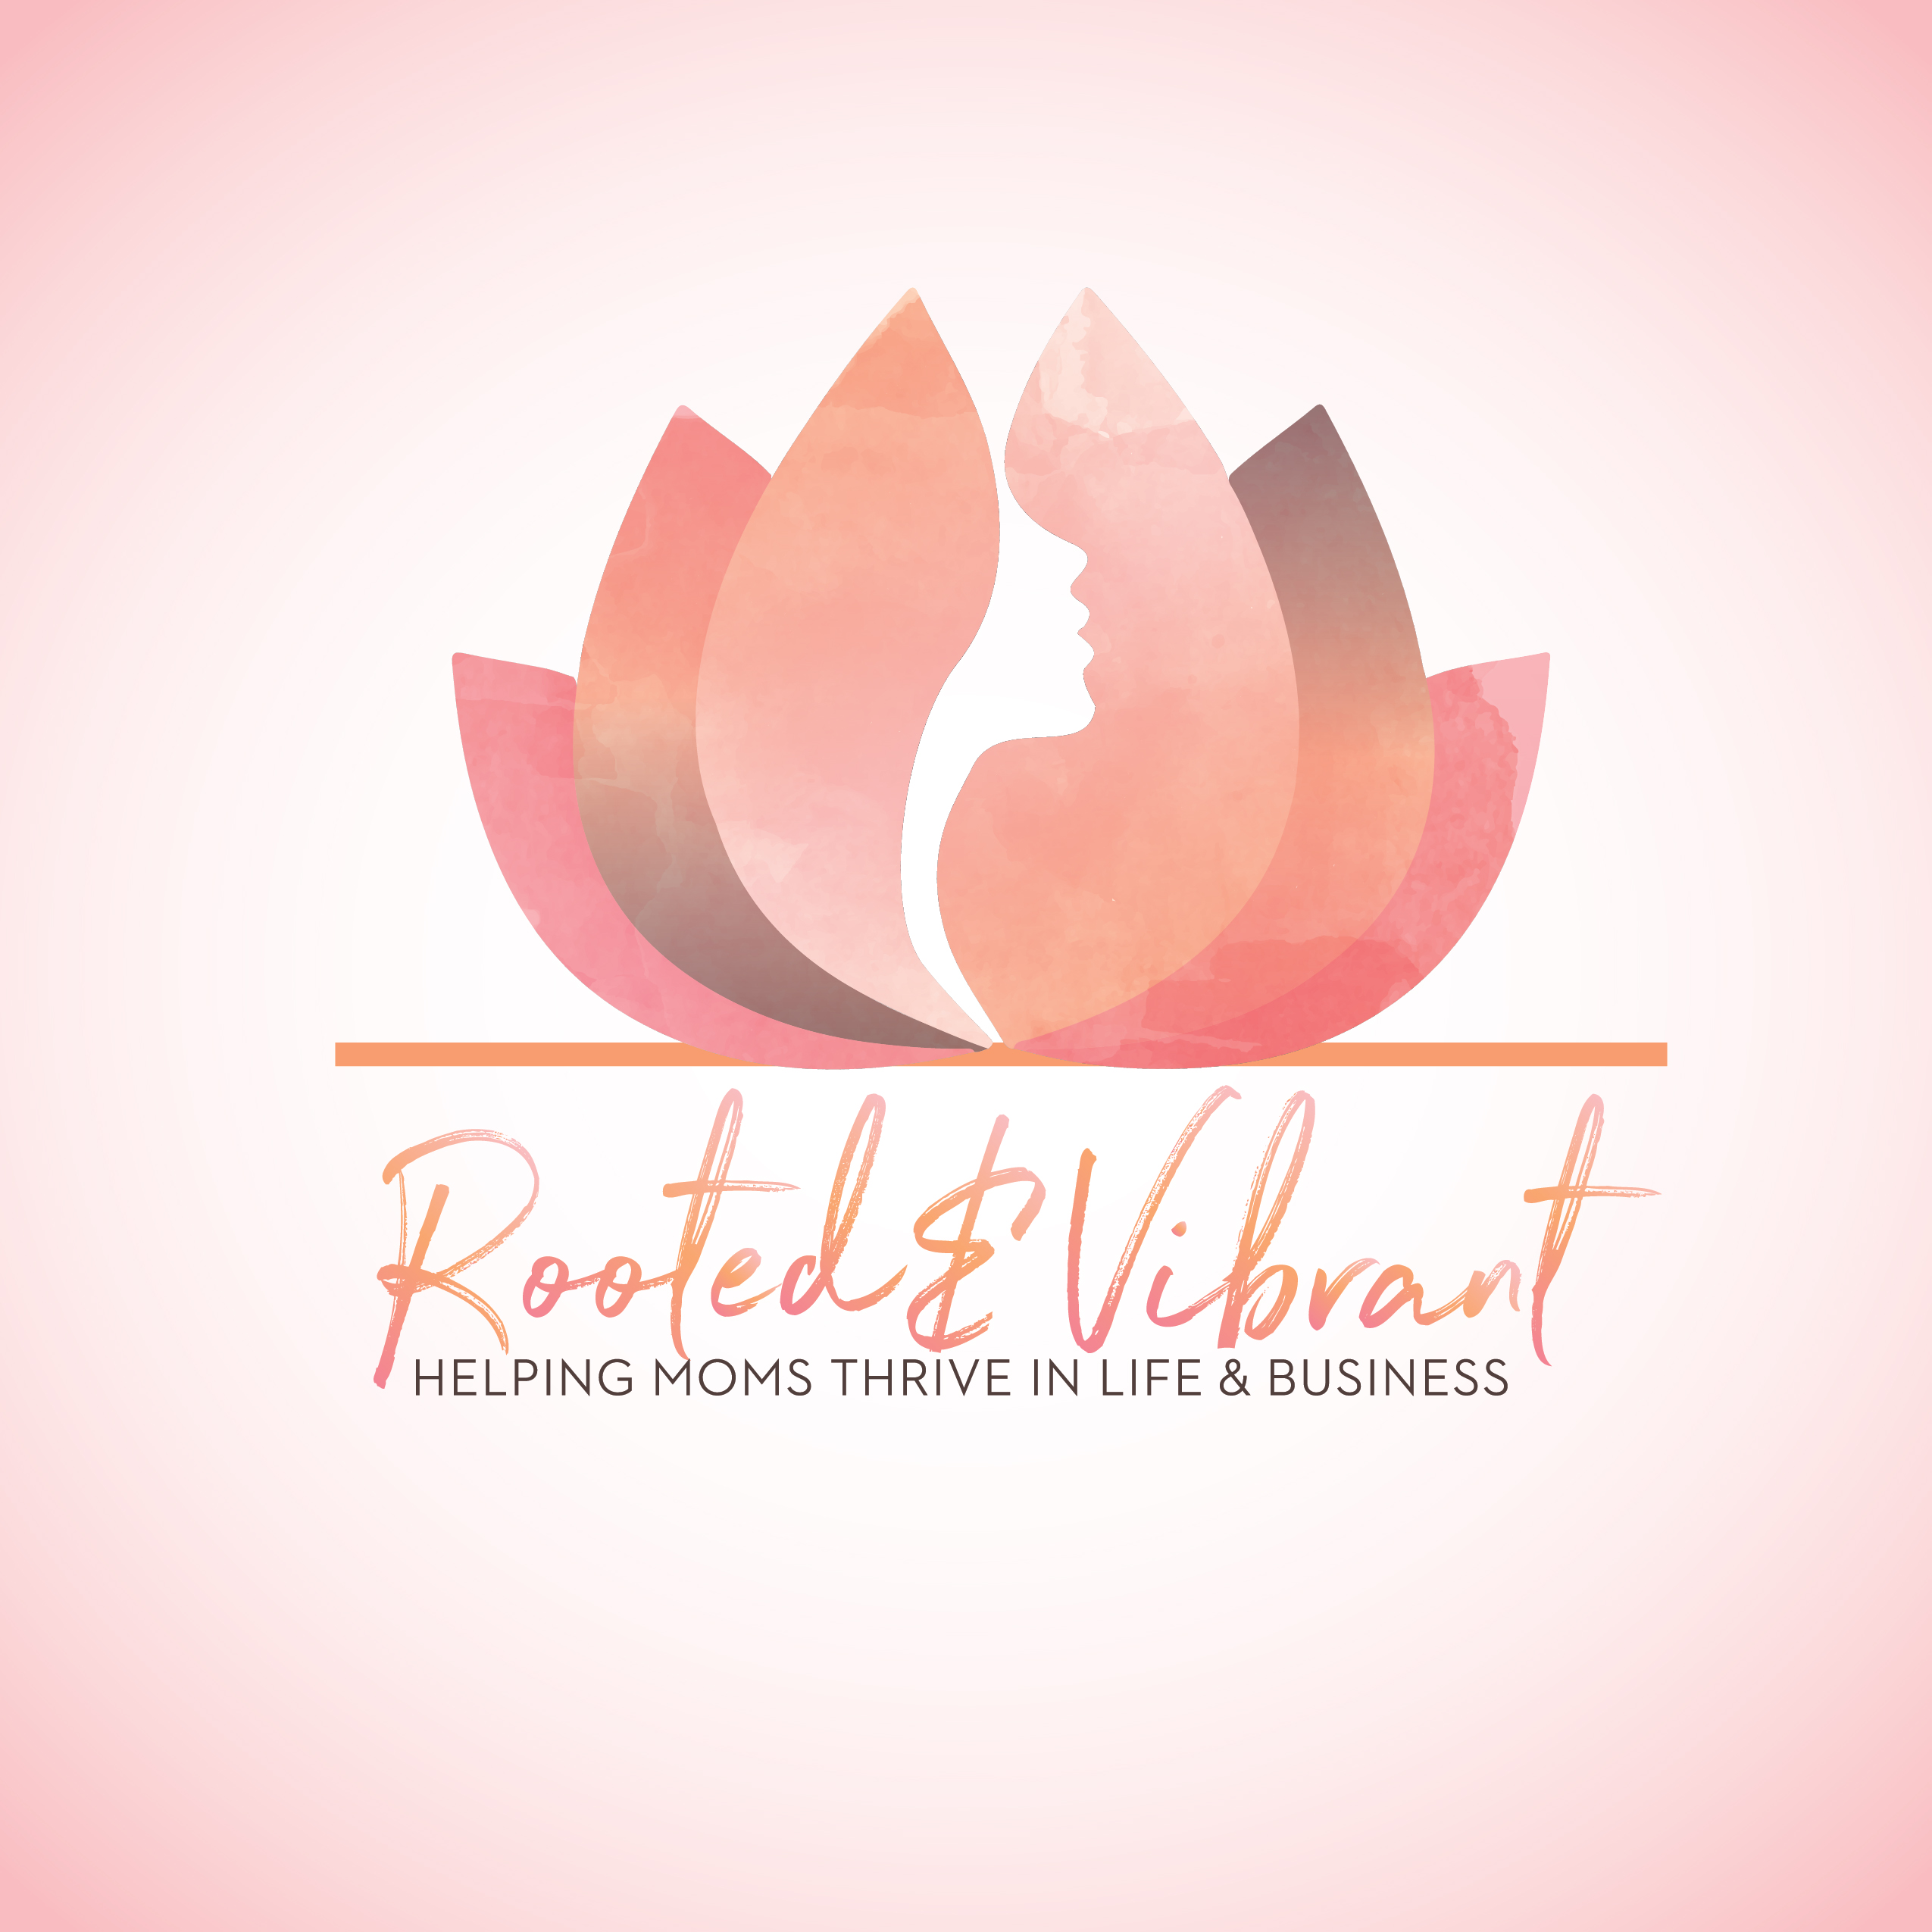 Rooted & Vibrant - Megan Day, Certified Life Coach